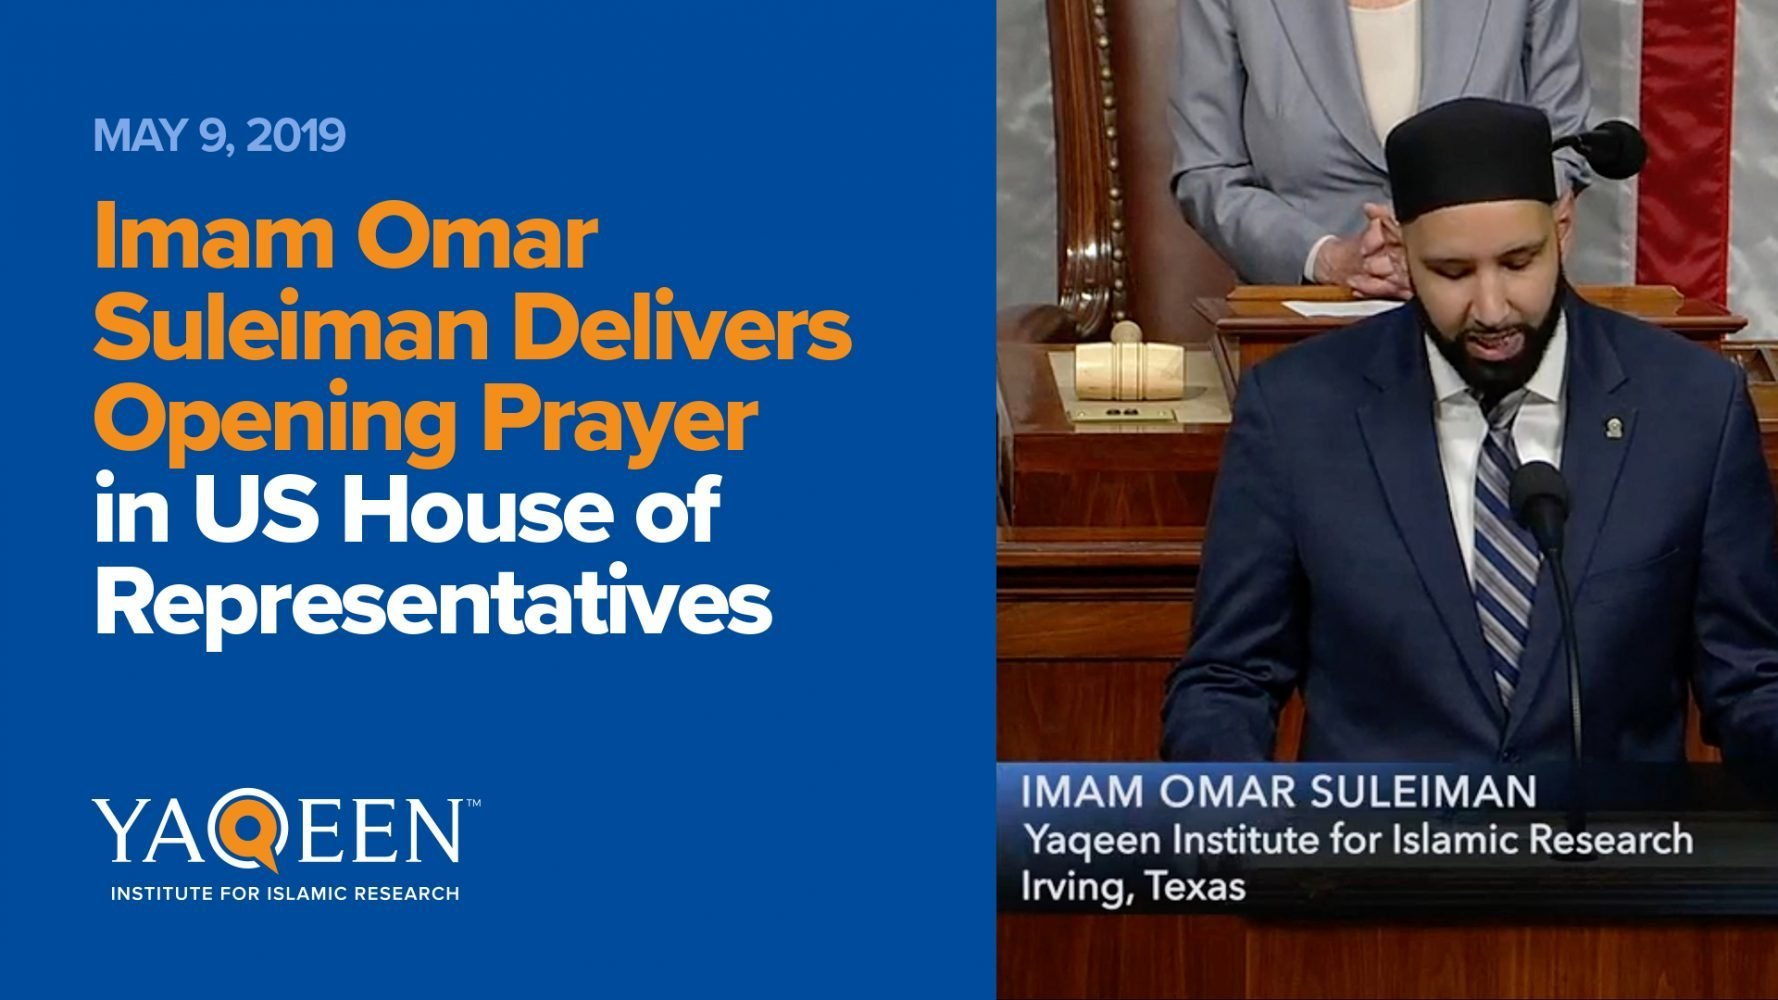 Imam Omar Suleiman Delivers Opening Prayer in US House of Representatives